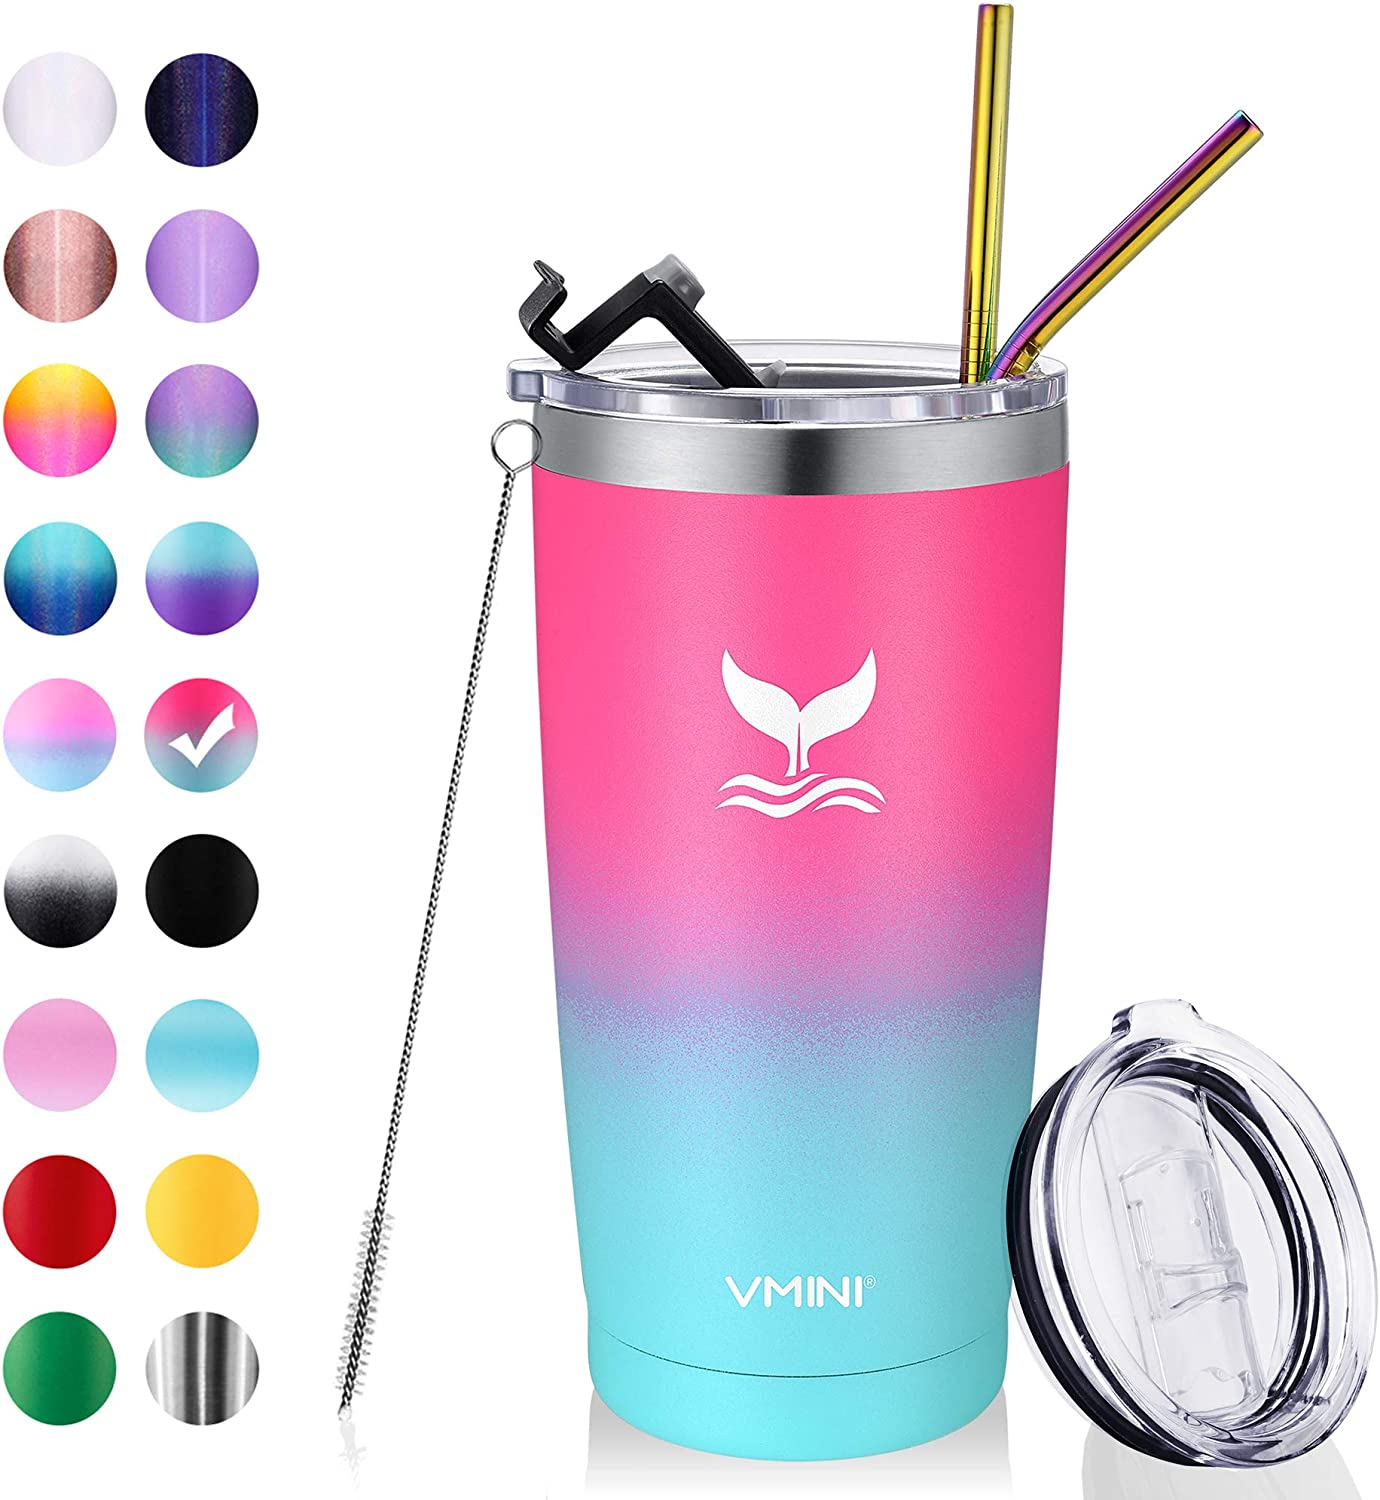 Vmini 20 oz Tumbler with Straws and Lids, Ice Coffee Tumbler, Travel Mug Vacuum Insulated Coffee Beer Pint Cup - 18/8 Stainless Steel Water Bottle : Pink + Mint